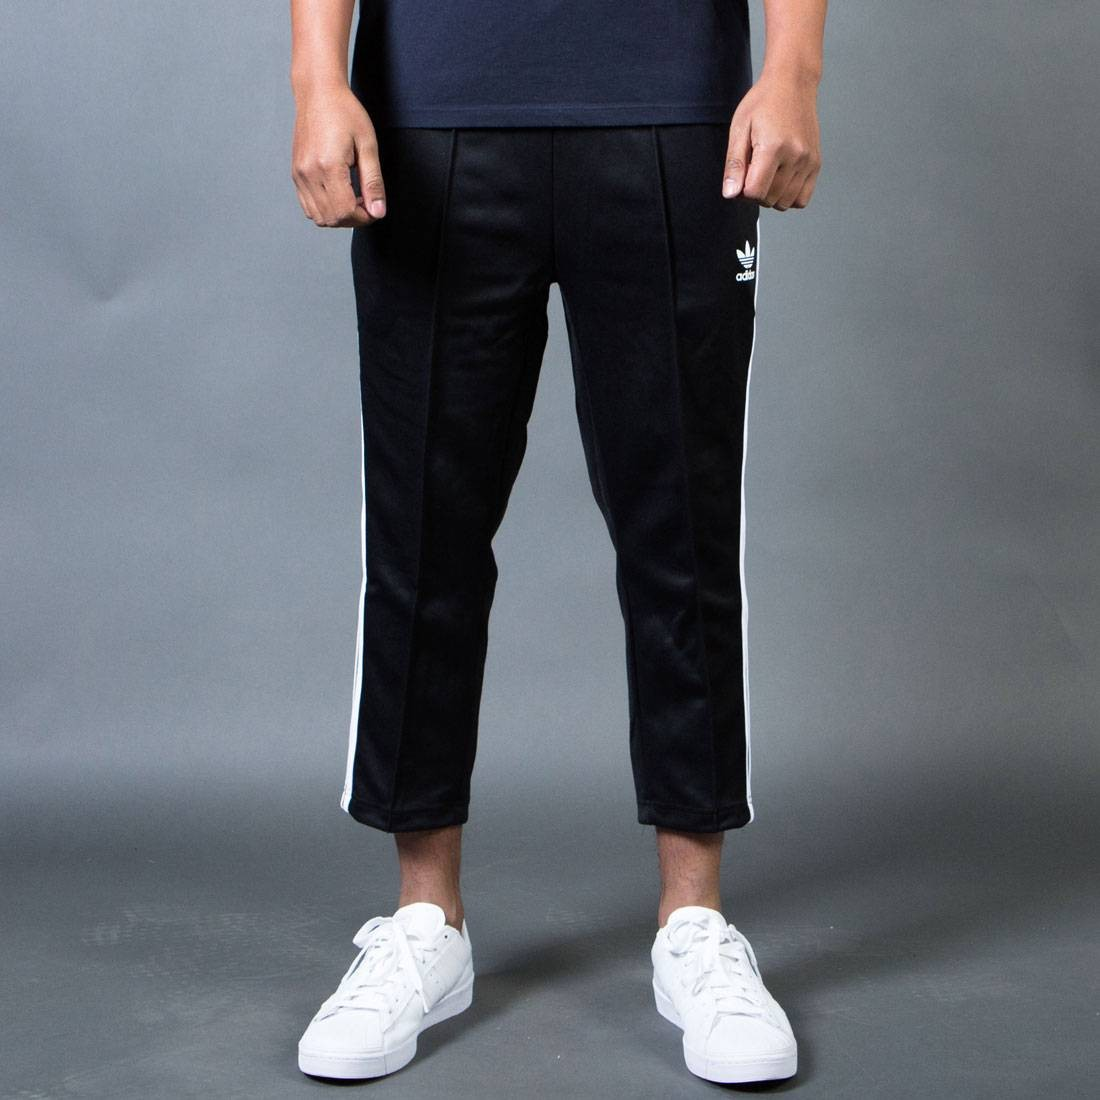 adidas men's superstar pants